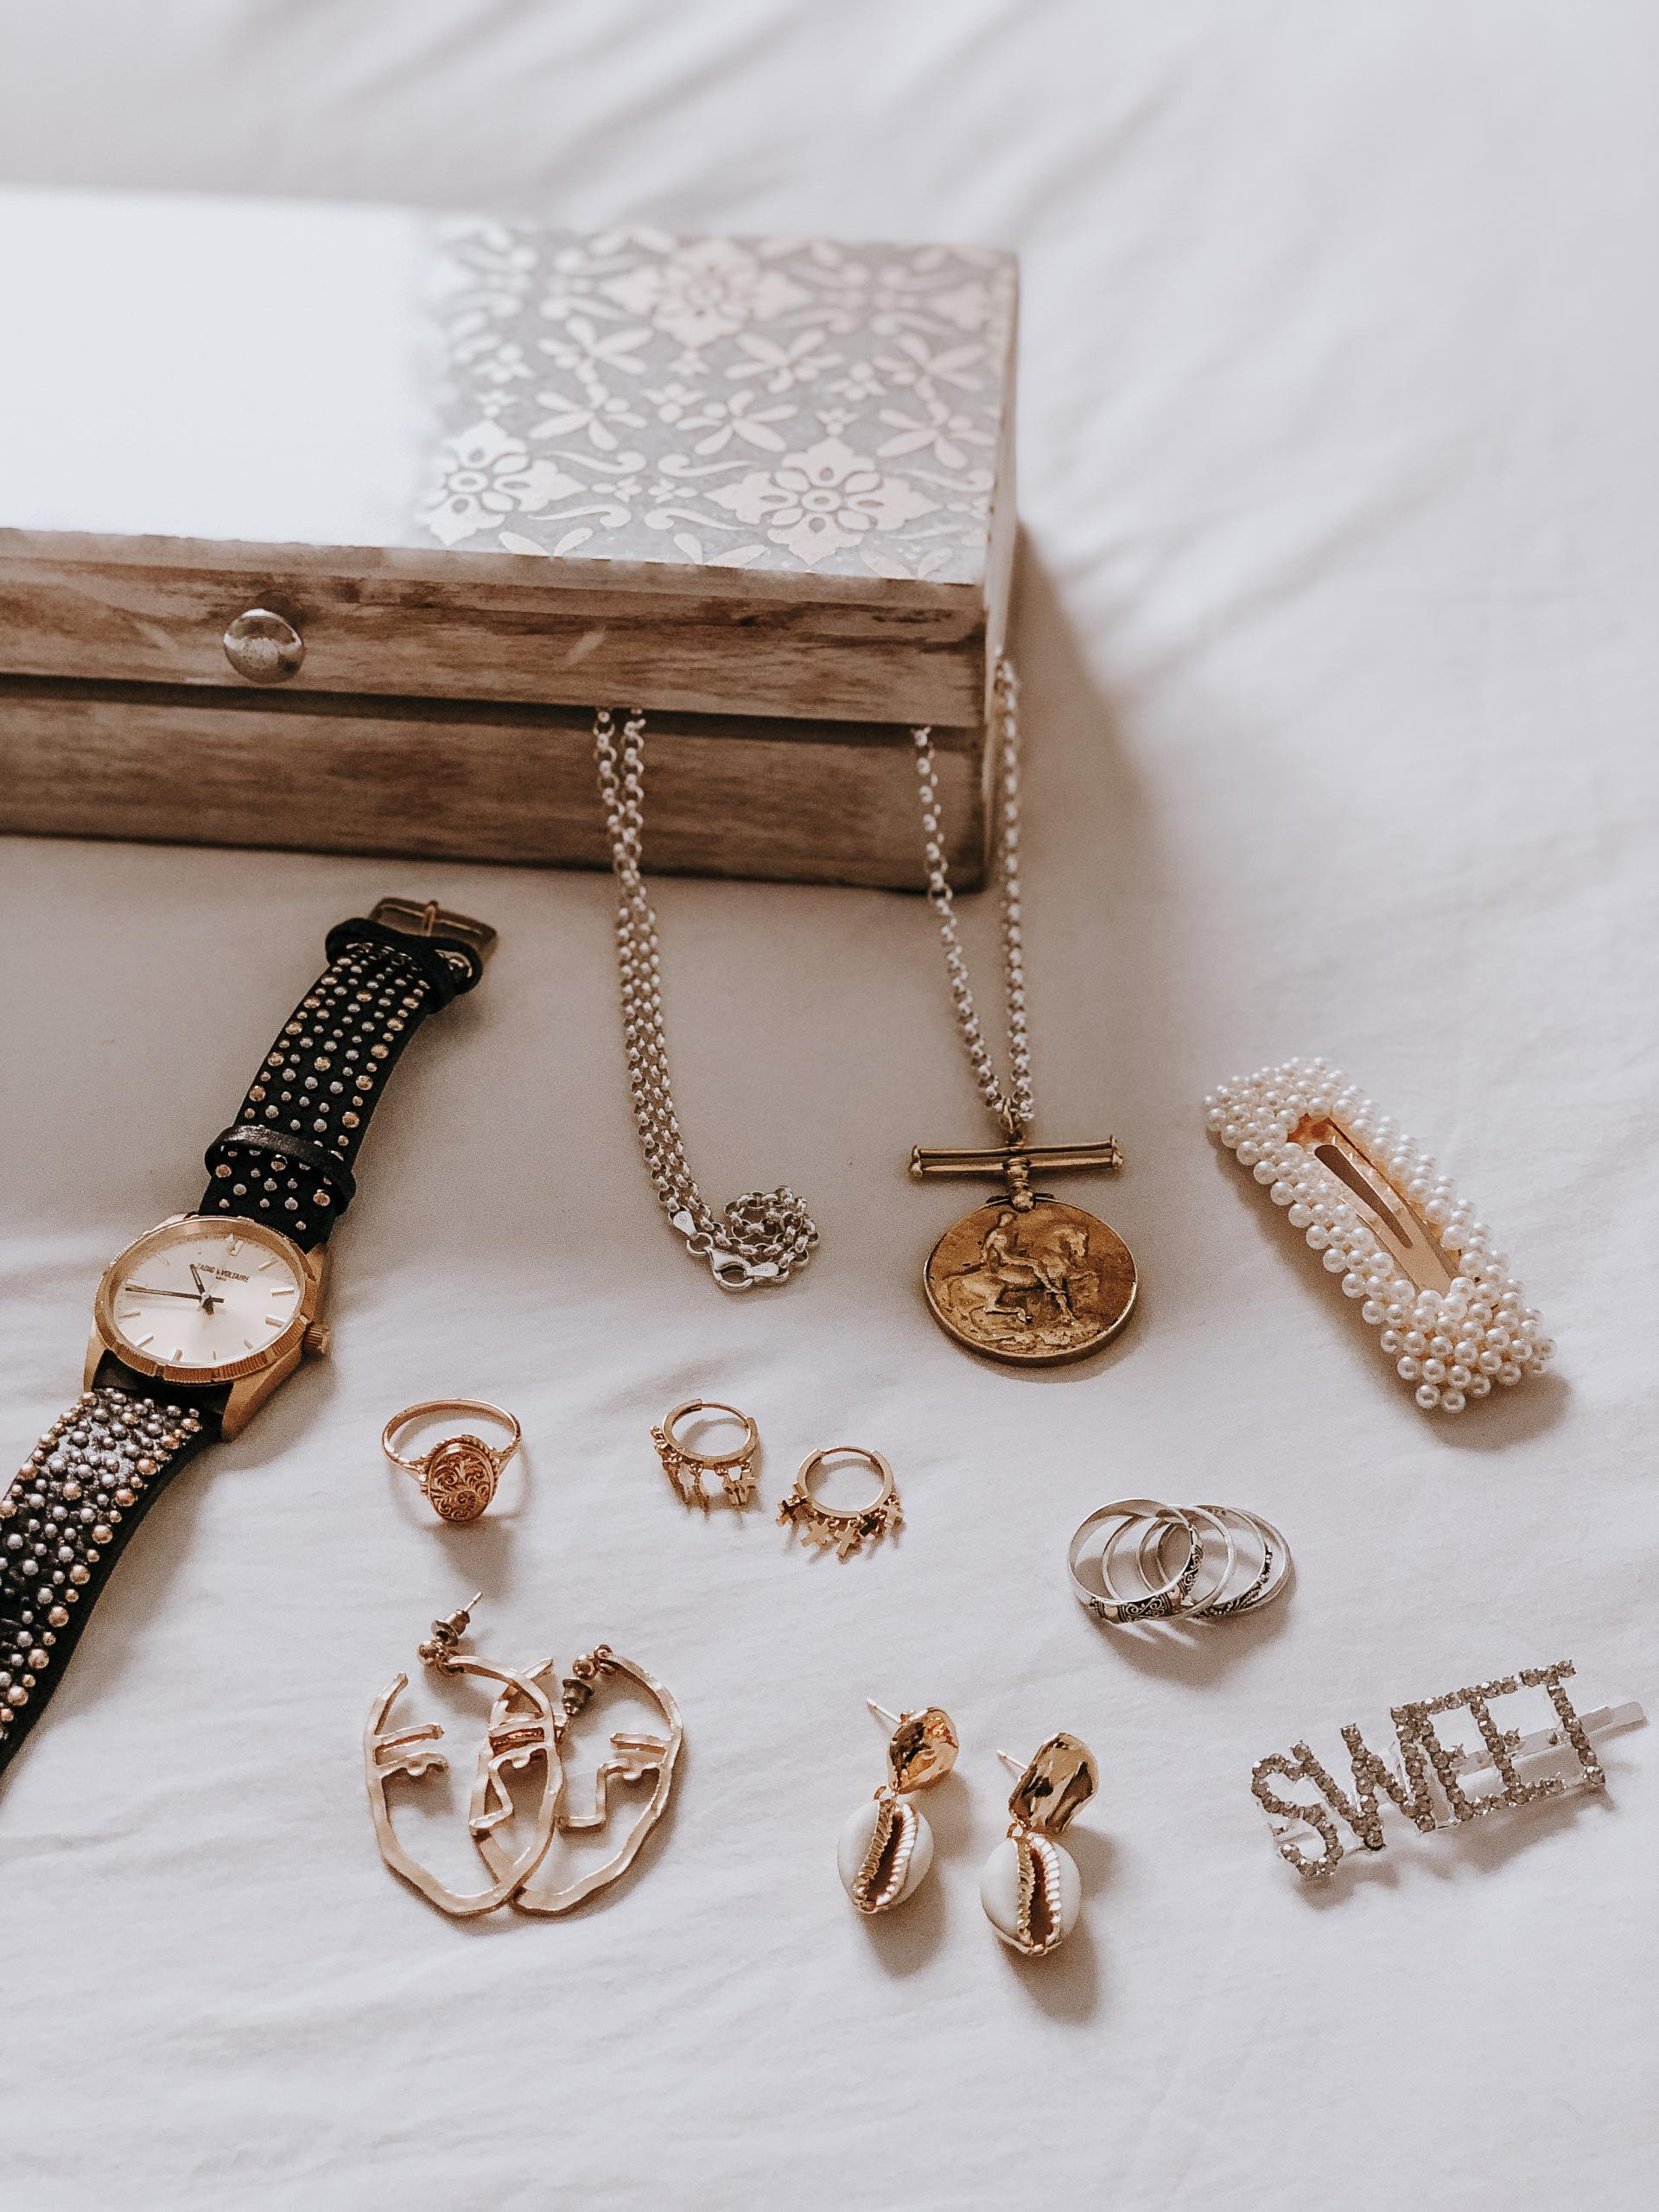 Easy accessory stories for this season